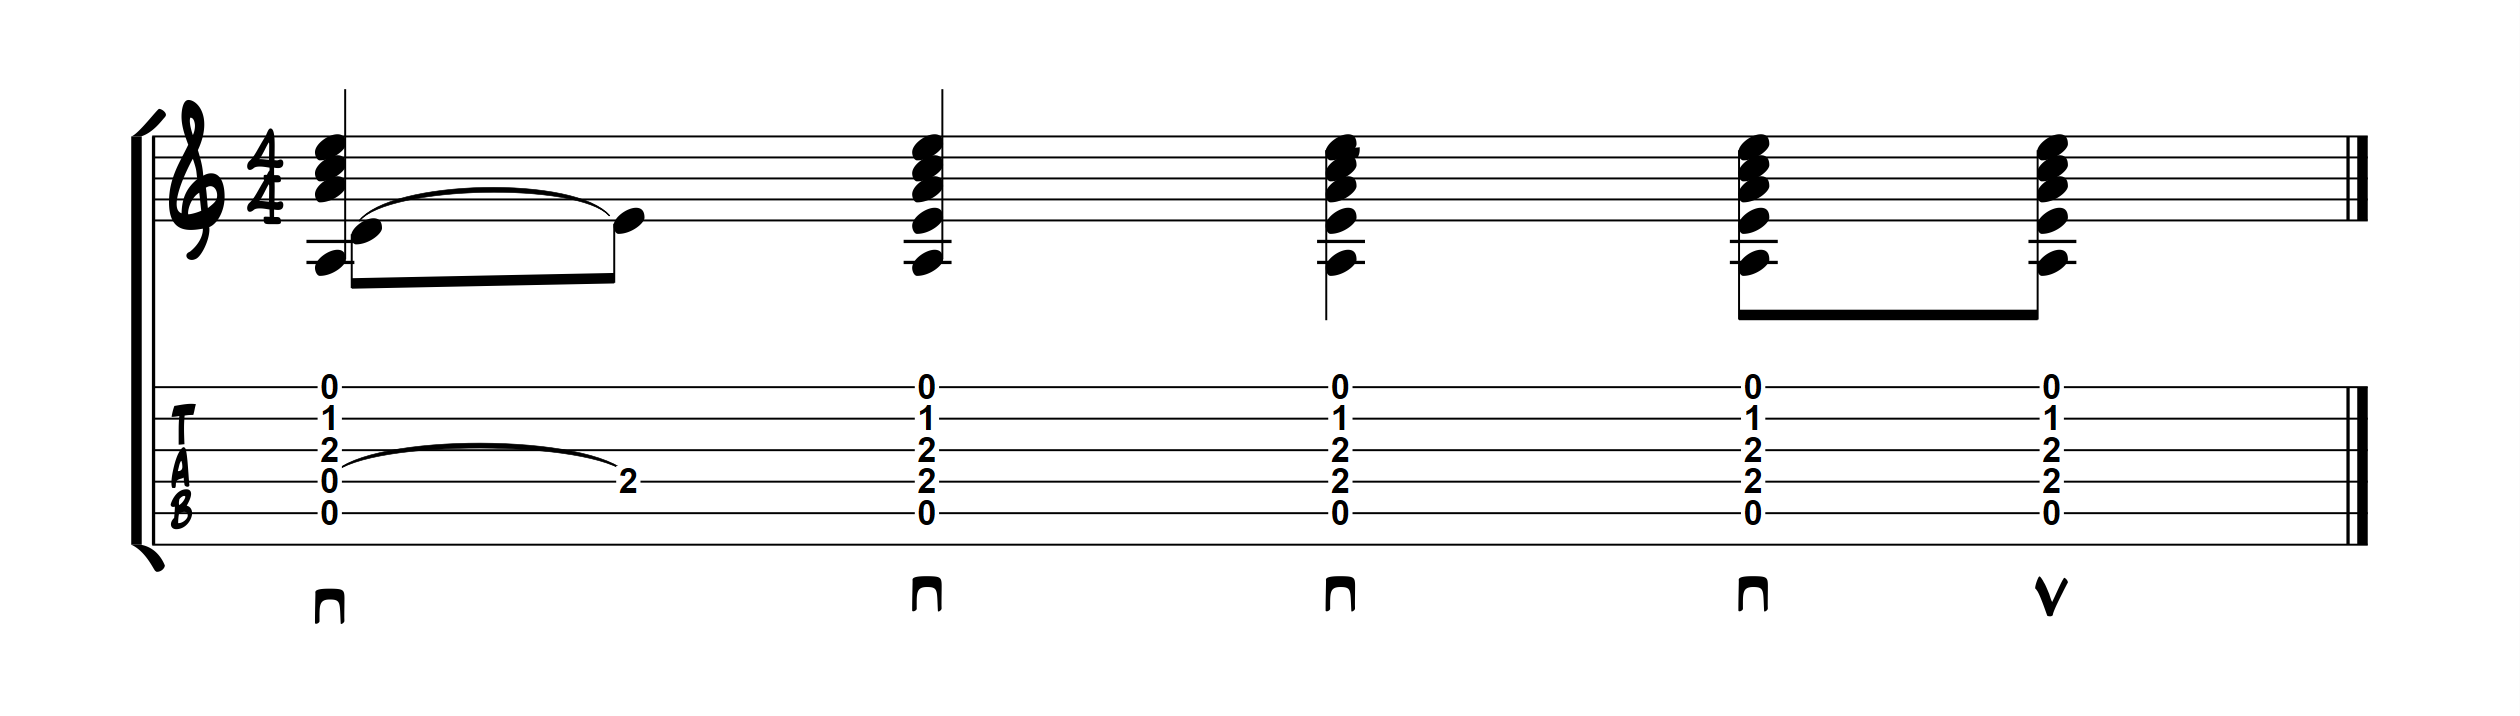 Exemple tablature accords ouverts avec hammer-on